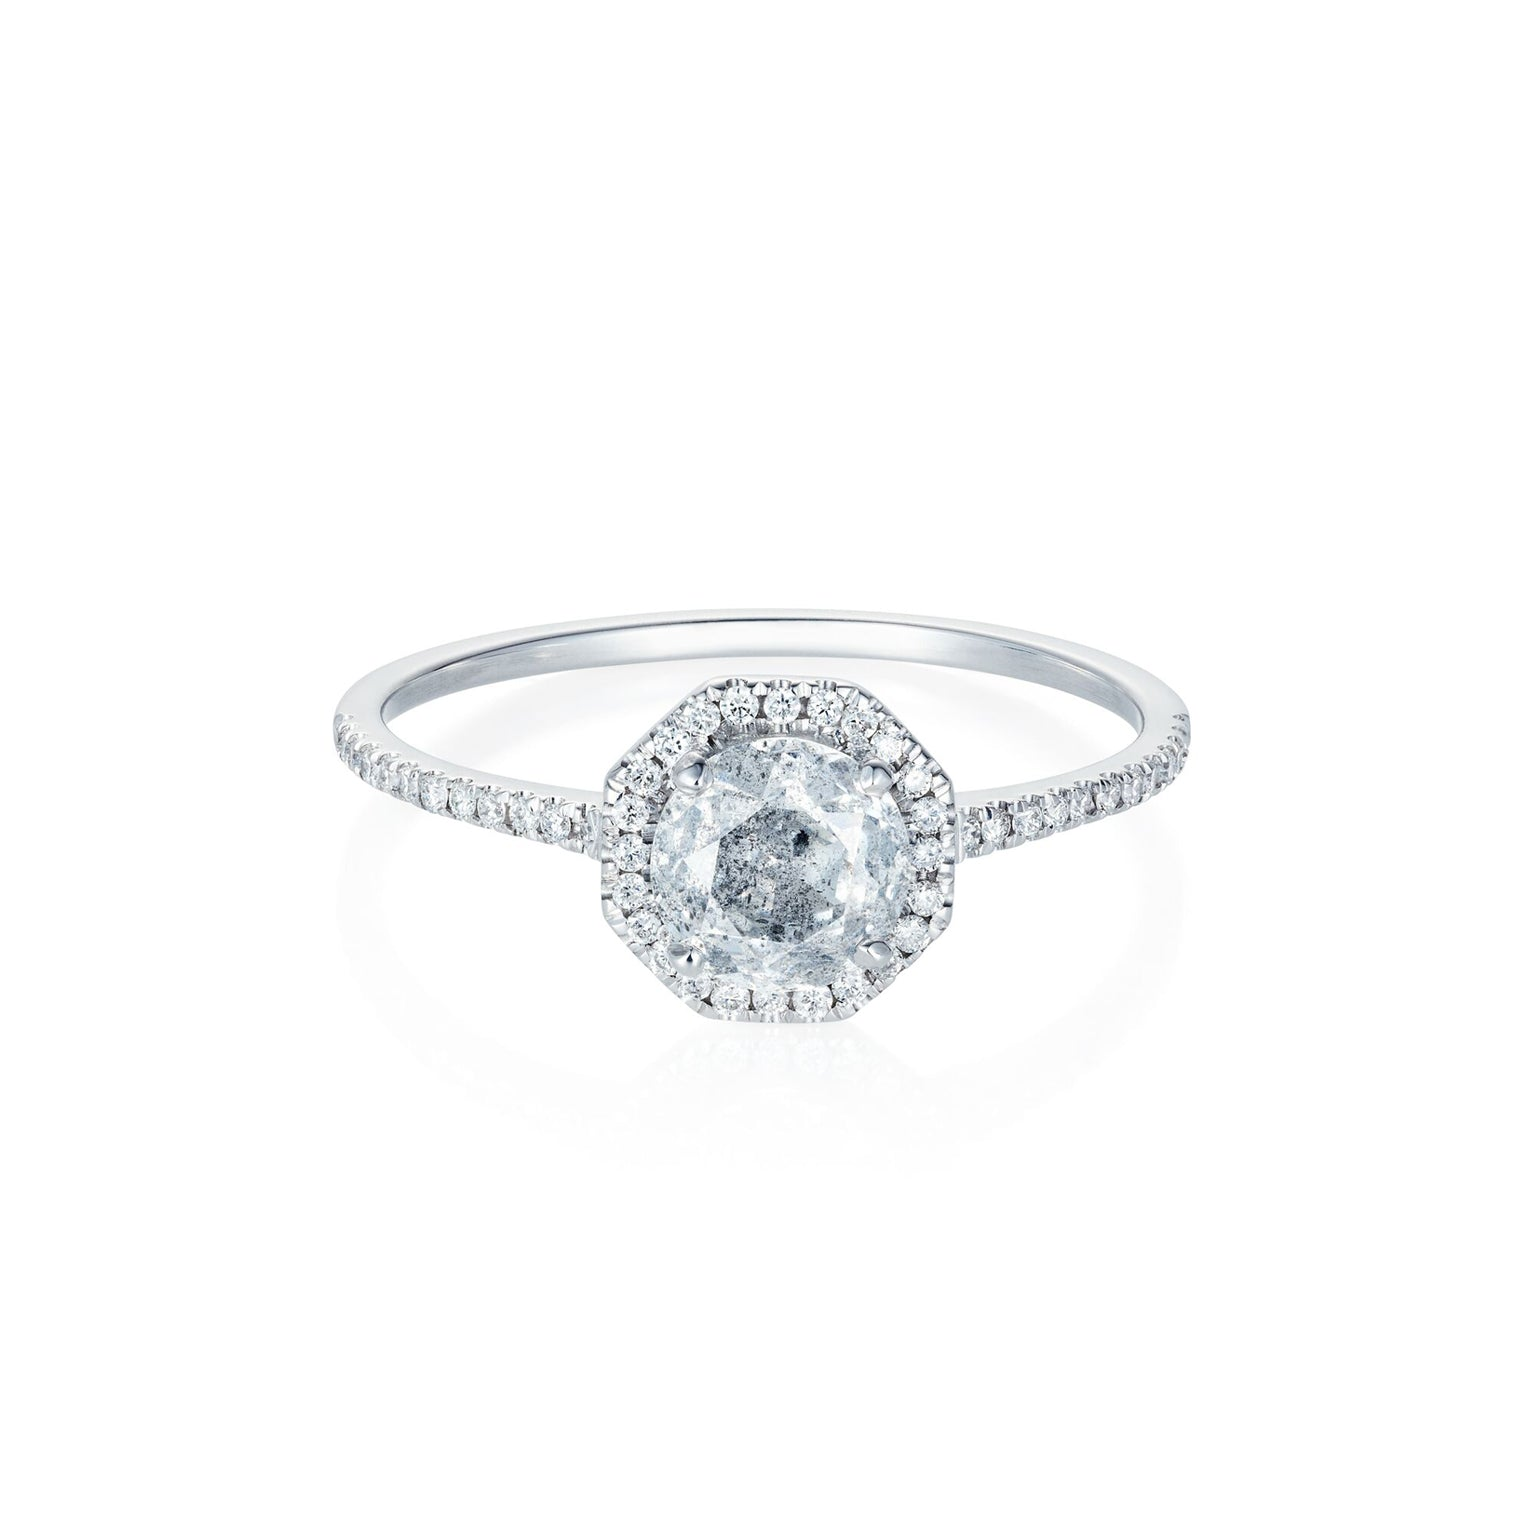 18ct White Gold, Grey Diamond and Diamond Octagon Halo